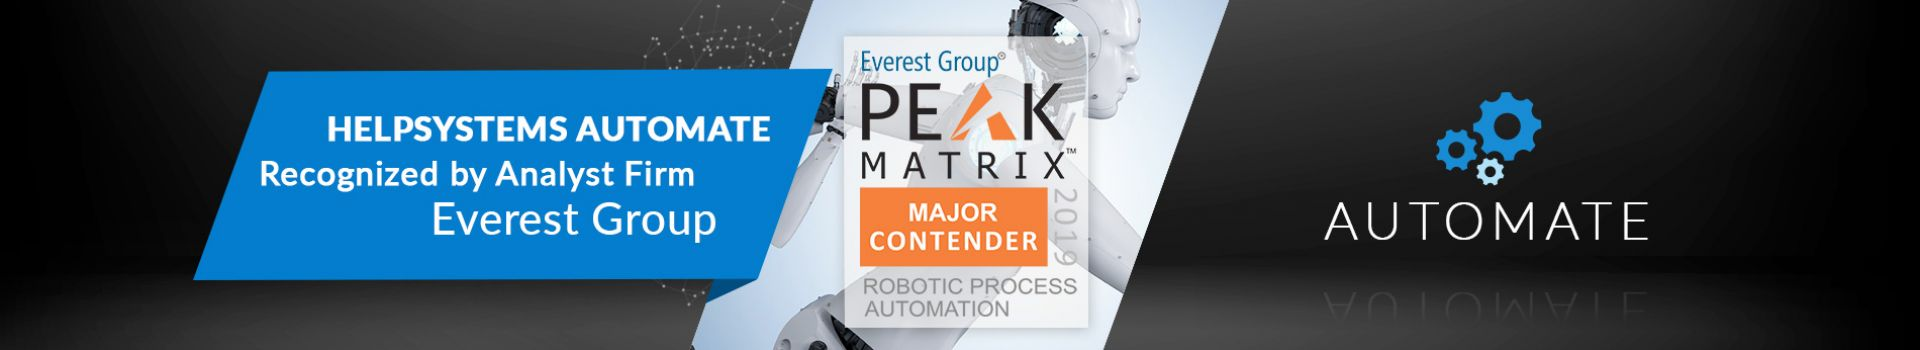 Everest PEAK Matrix Contender: HelpSystems Automate